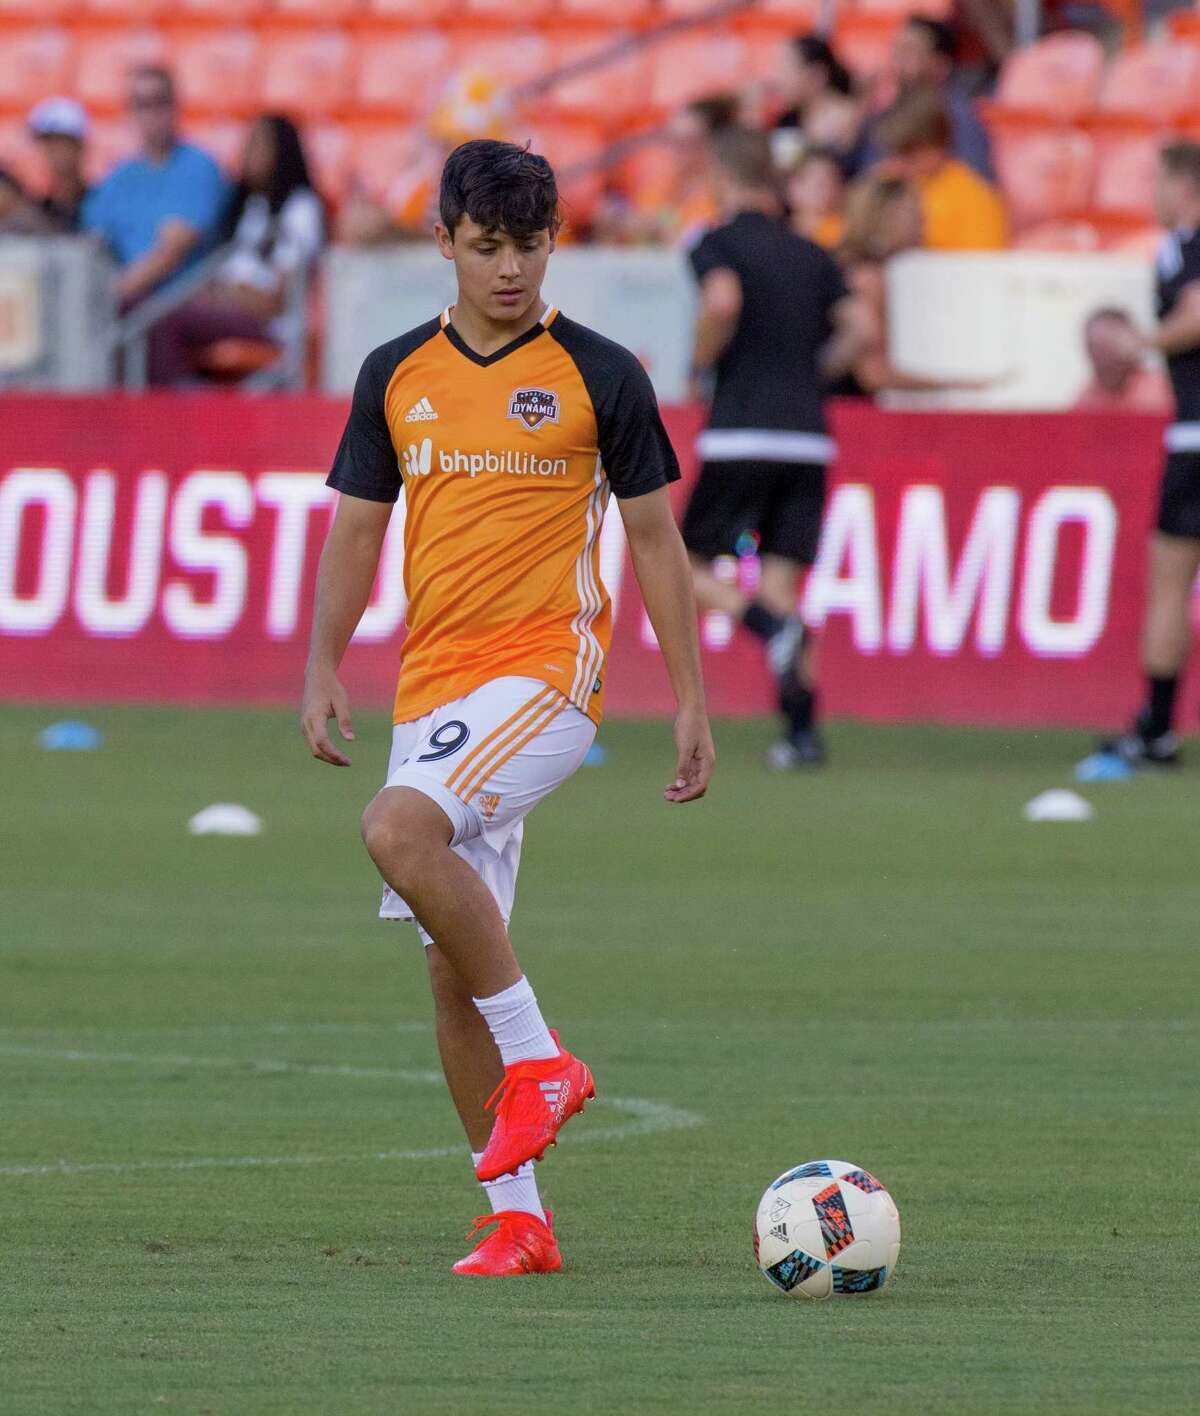 Houston Dynamo midfielder Christian Lucatero (29) on the field during practice before action between the between the Houston Dynamo and the San Jose Earthquakes during an MLS soccer game at BBVA Compass, Sunday, July 31, 2016, in Houston. (Juan DeLeon/for the Houston Chronicle)